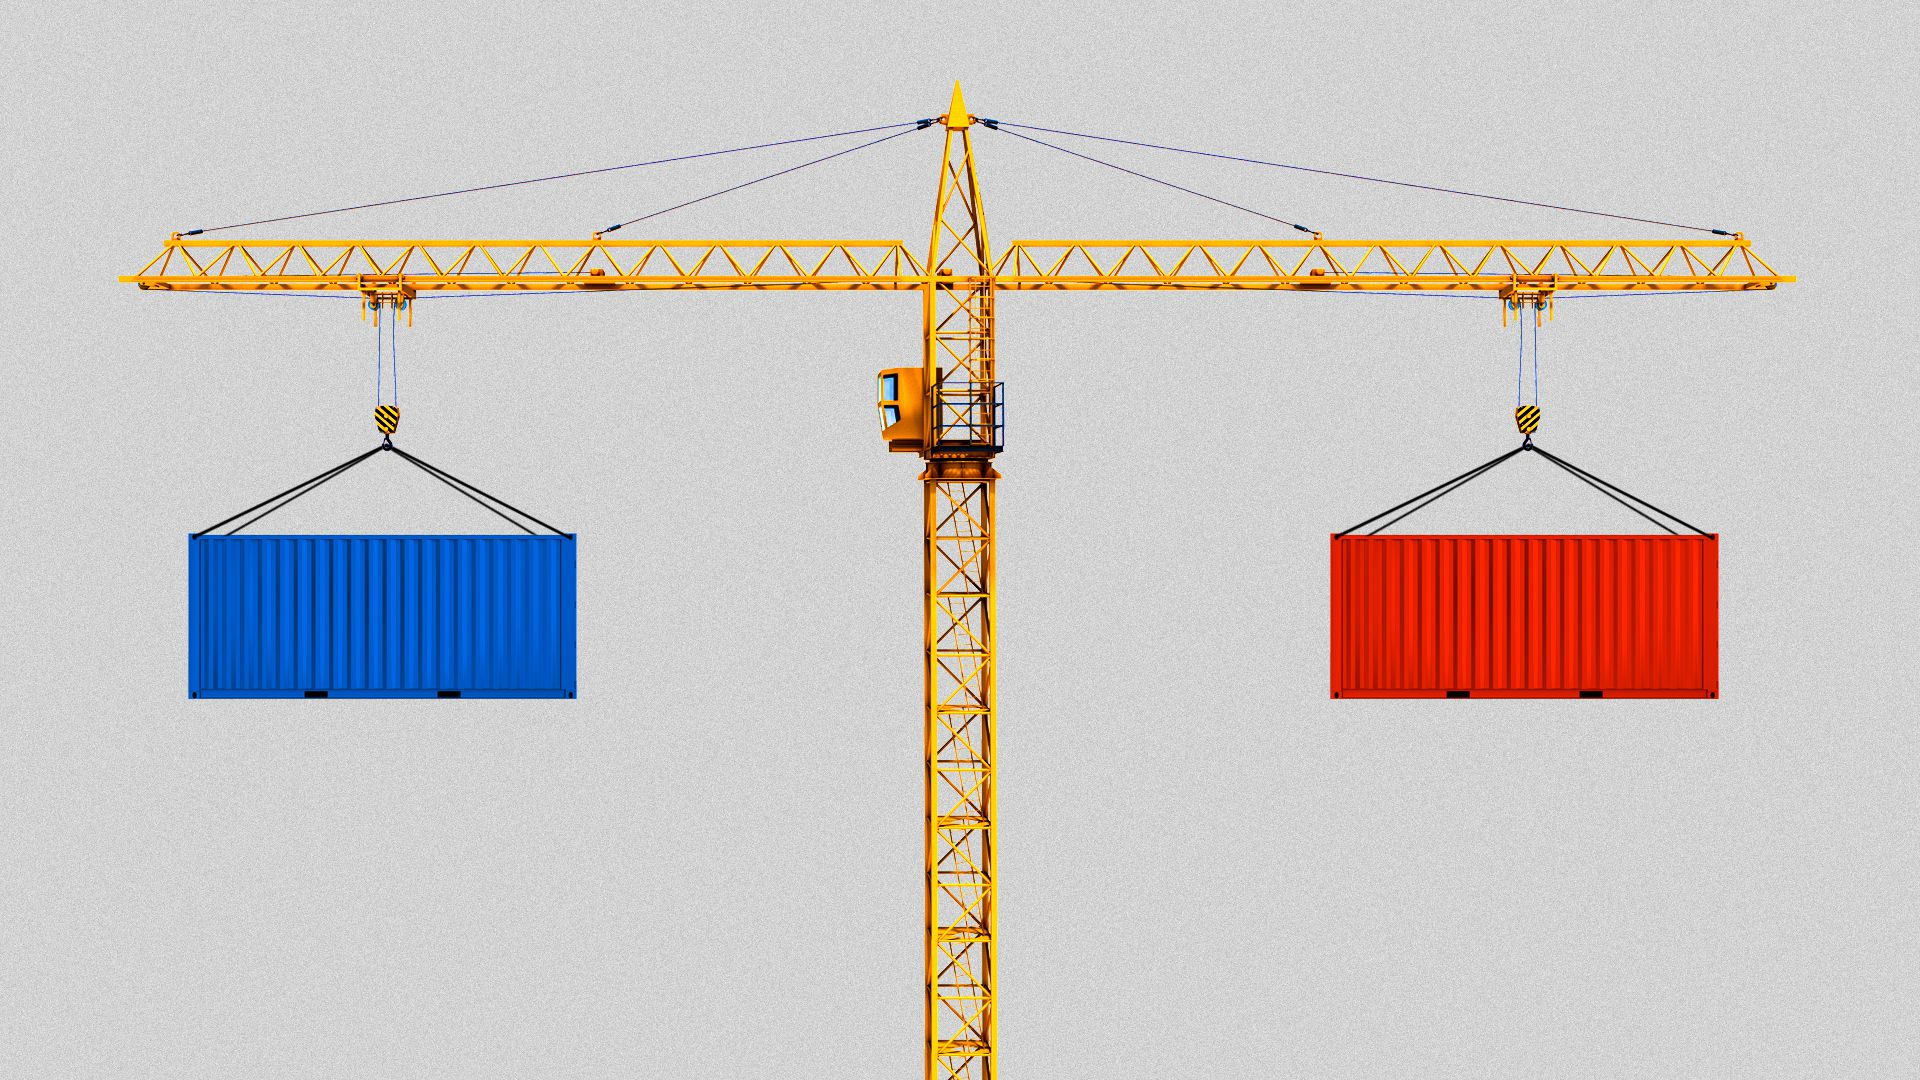 Illustration of a crane holding up two containers, one red and one blue, as a balancing act